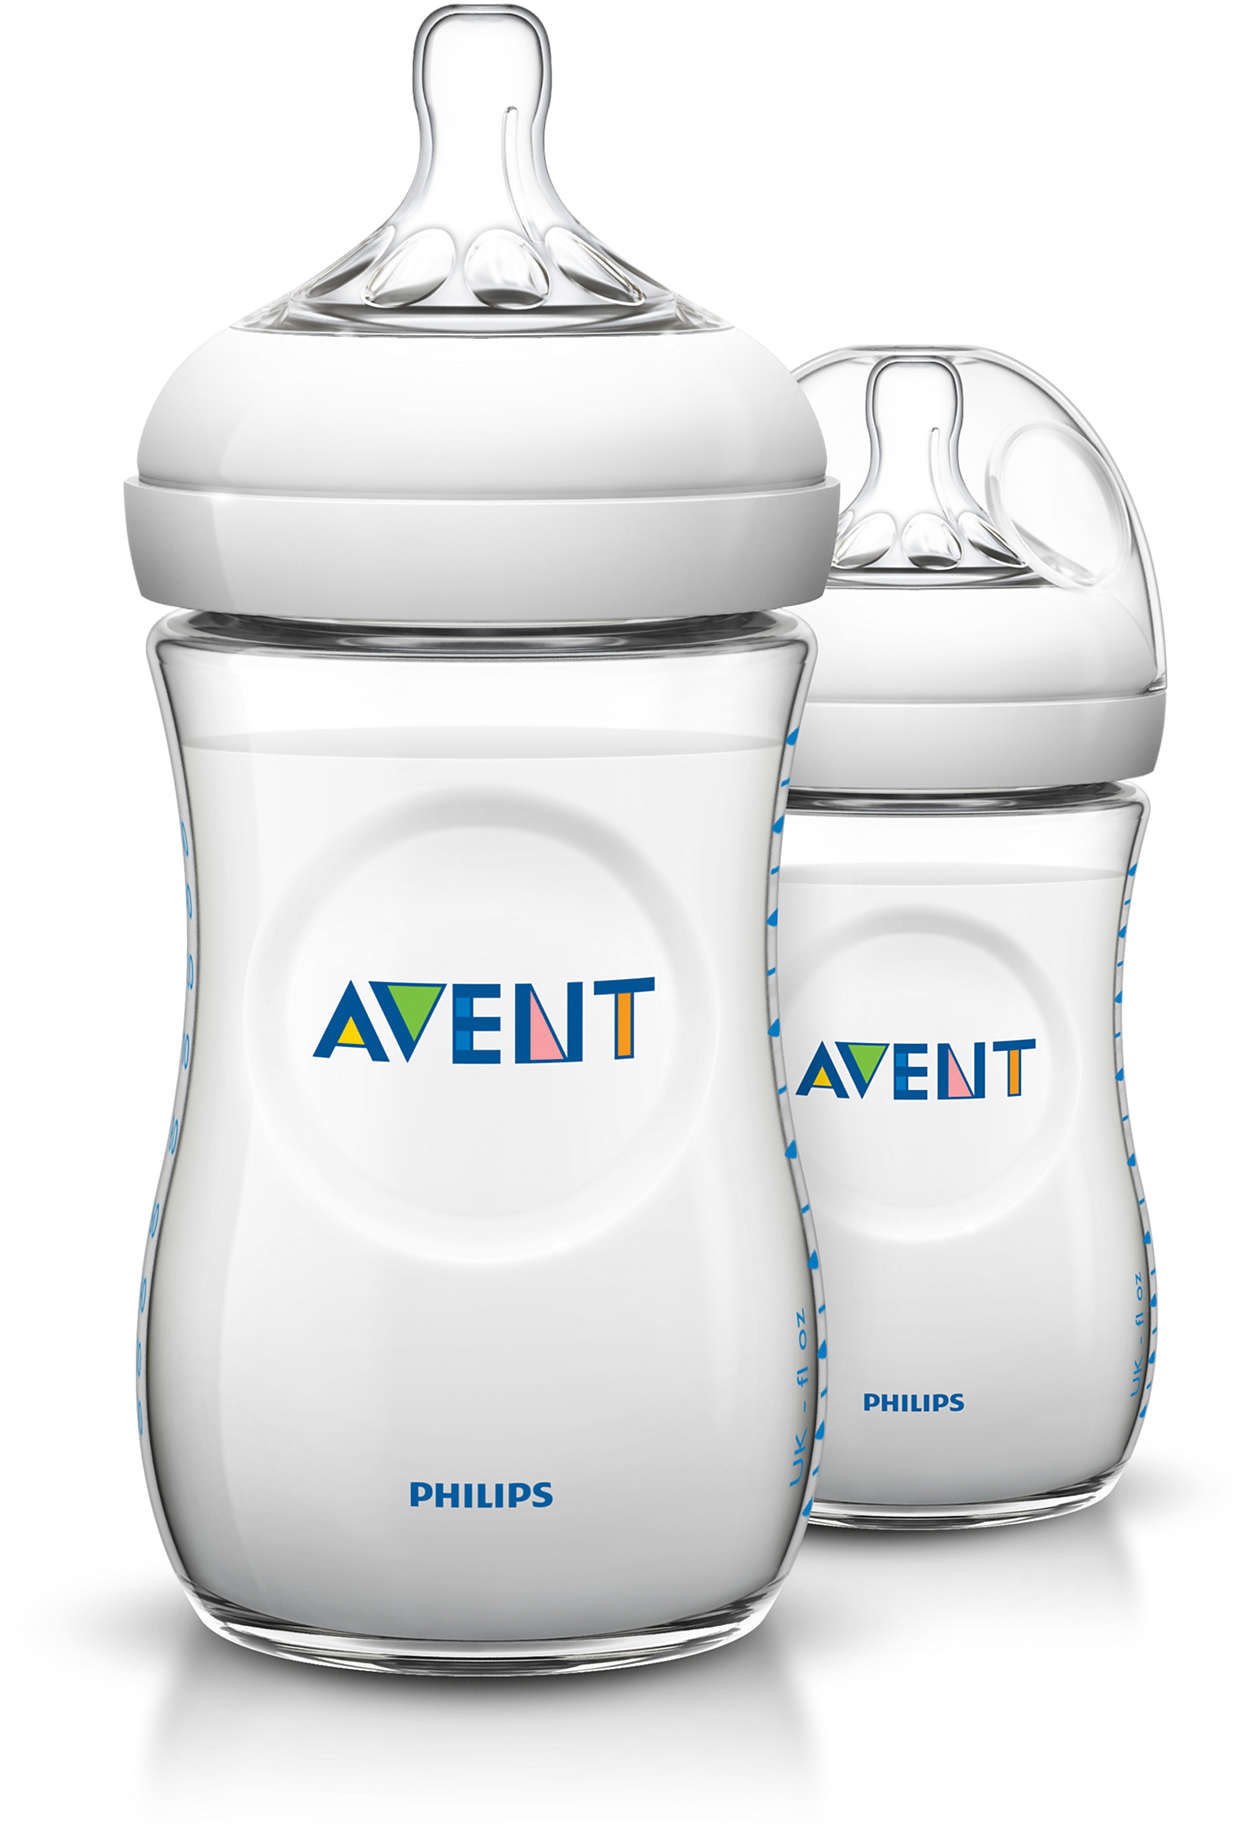 Buy The Avent Baby Bottle Scf693 27 Baby Bottle